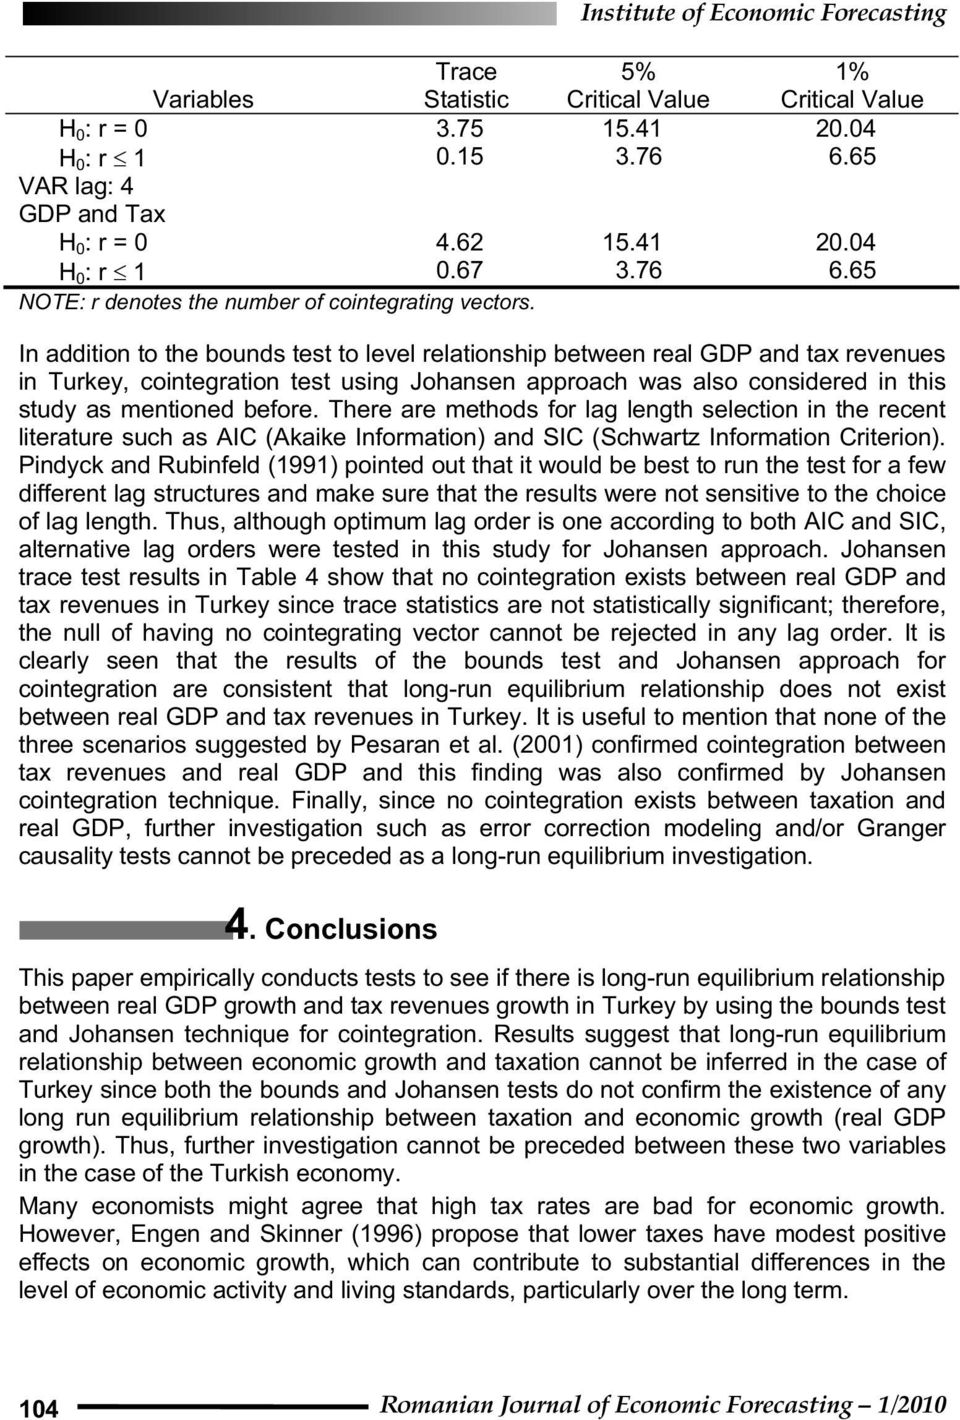 In addition to the bounds test to level relationship between real GDP and tax revenues in Turkey, cointegration test using Johansen approach was also considered in this study as mentioned before.